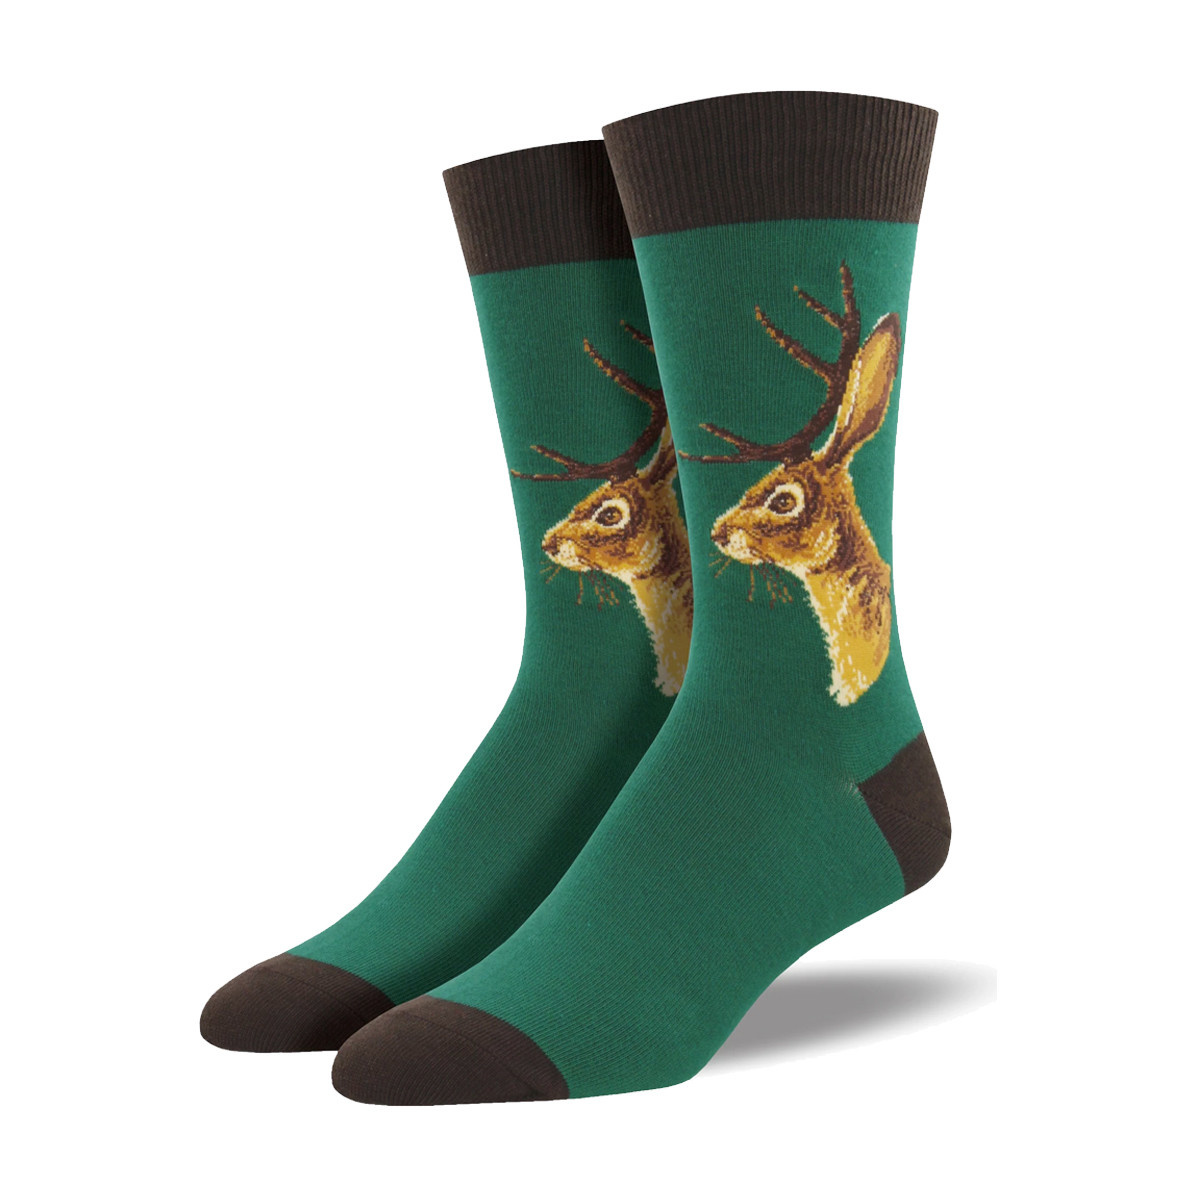 Socksmith Socksmith Men's Cotton Crew Socks Jackalope